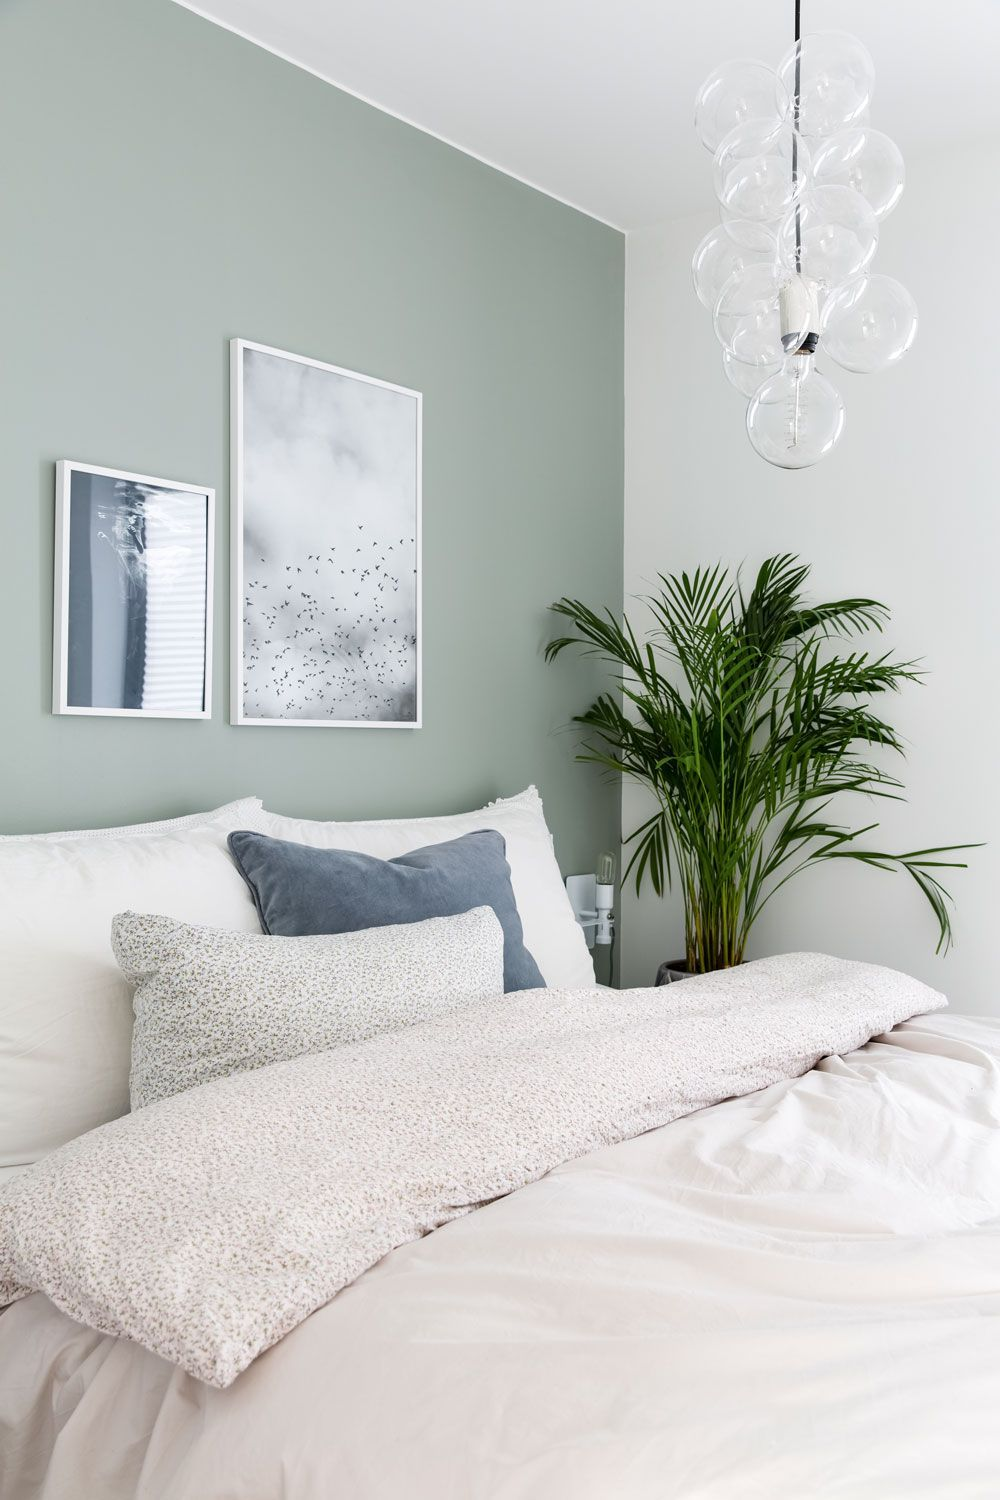 Bedroom Styling Tricks You Can Do It Easily Bedroom Wall Colors Bedroom Interior Home Decor Bedroom